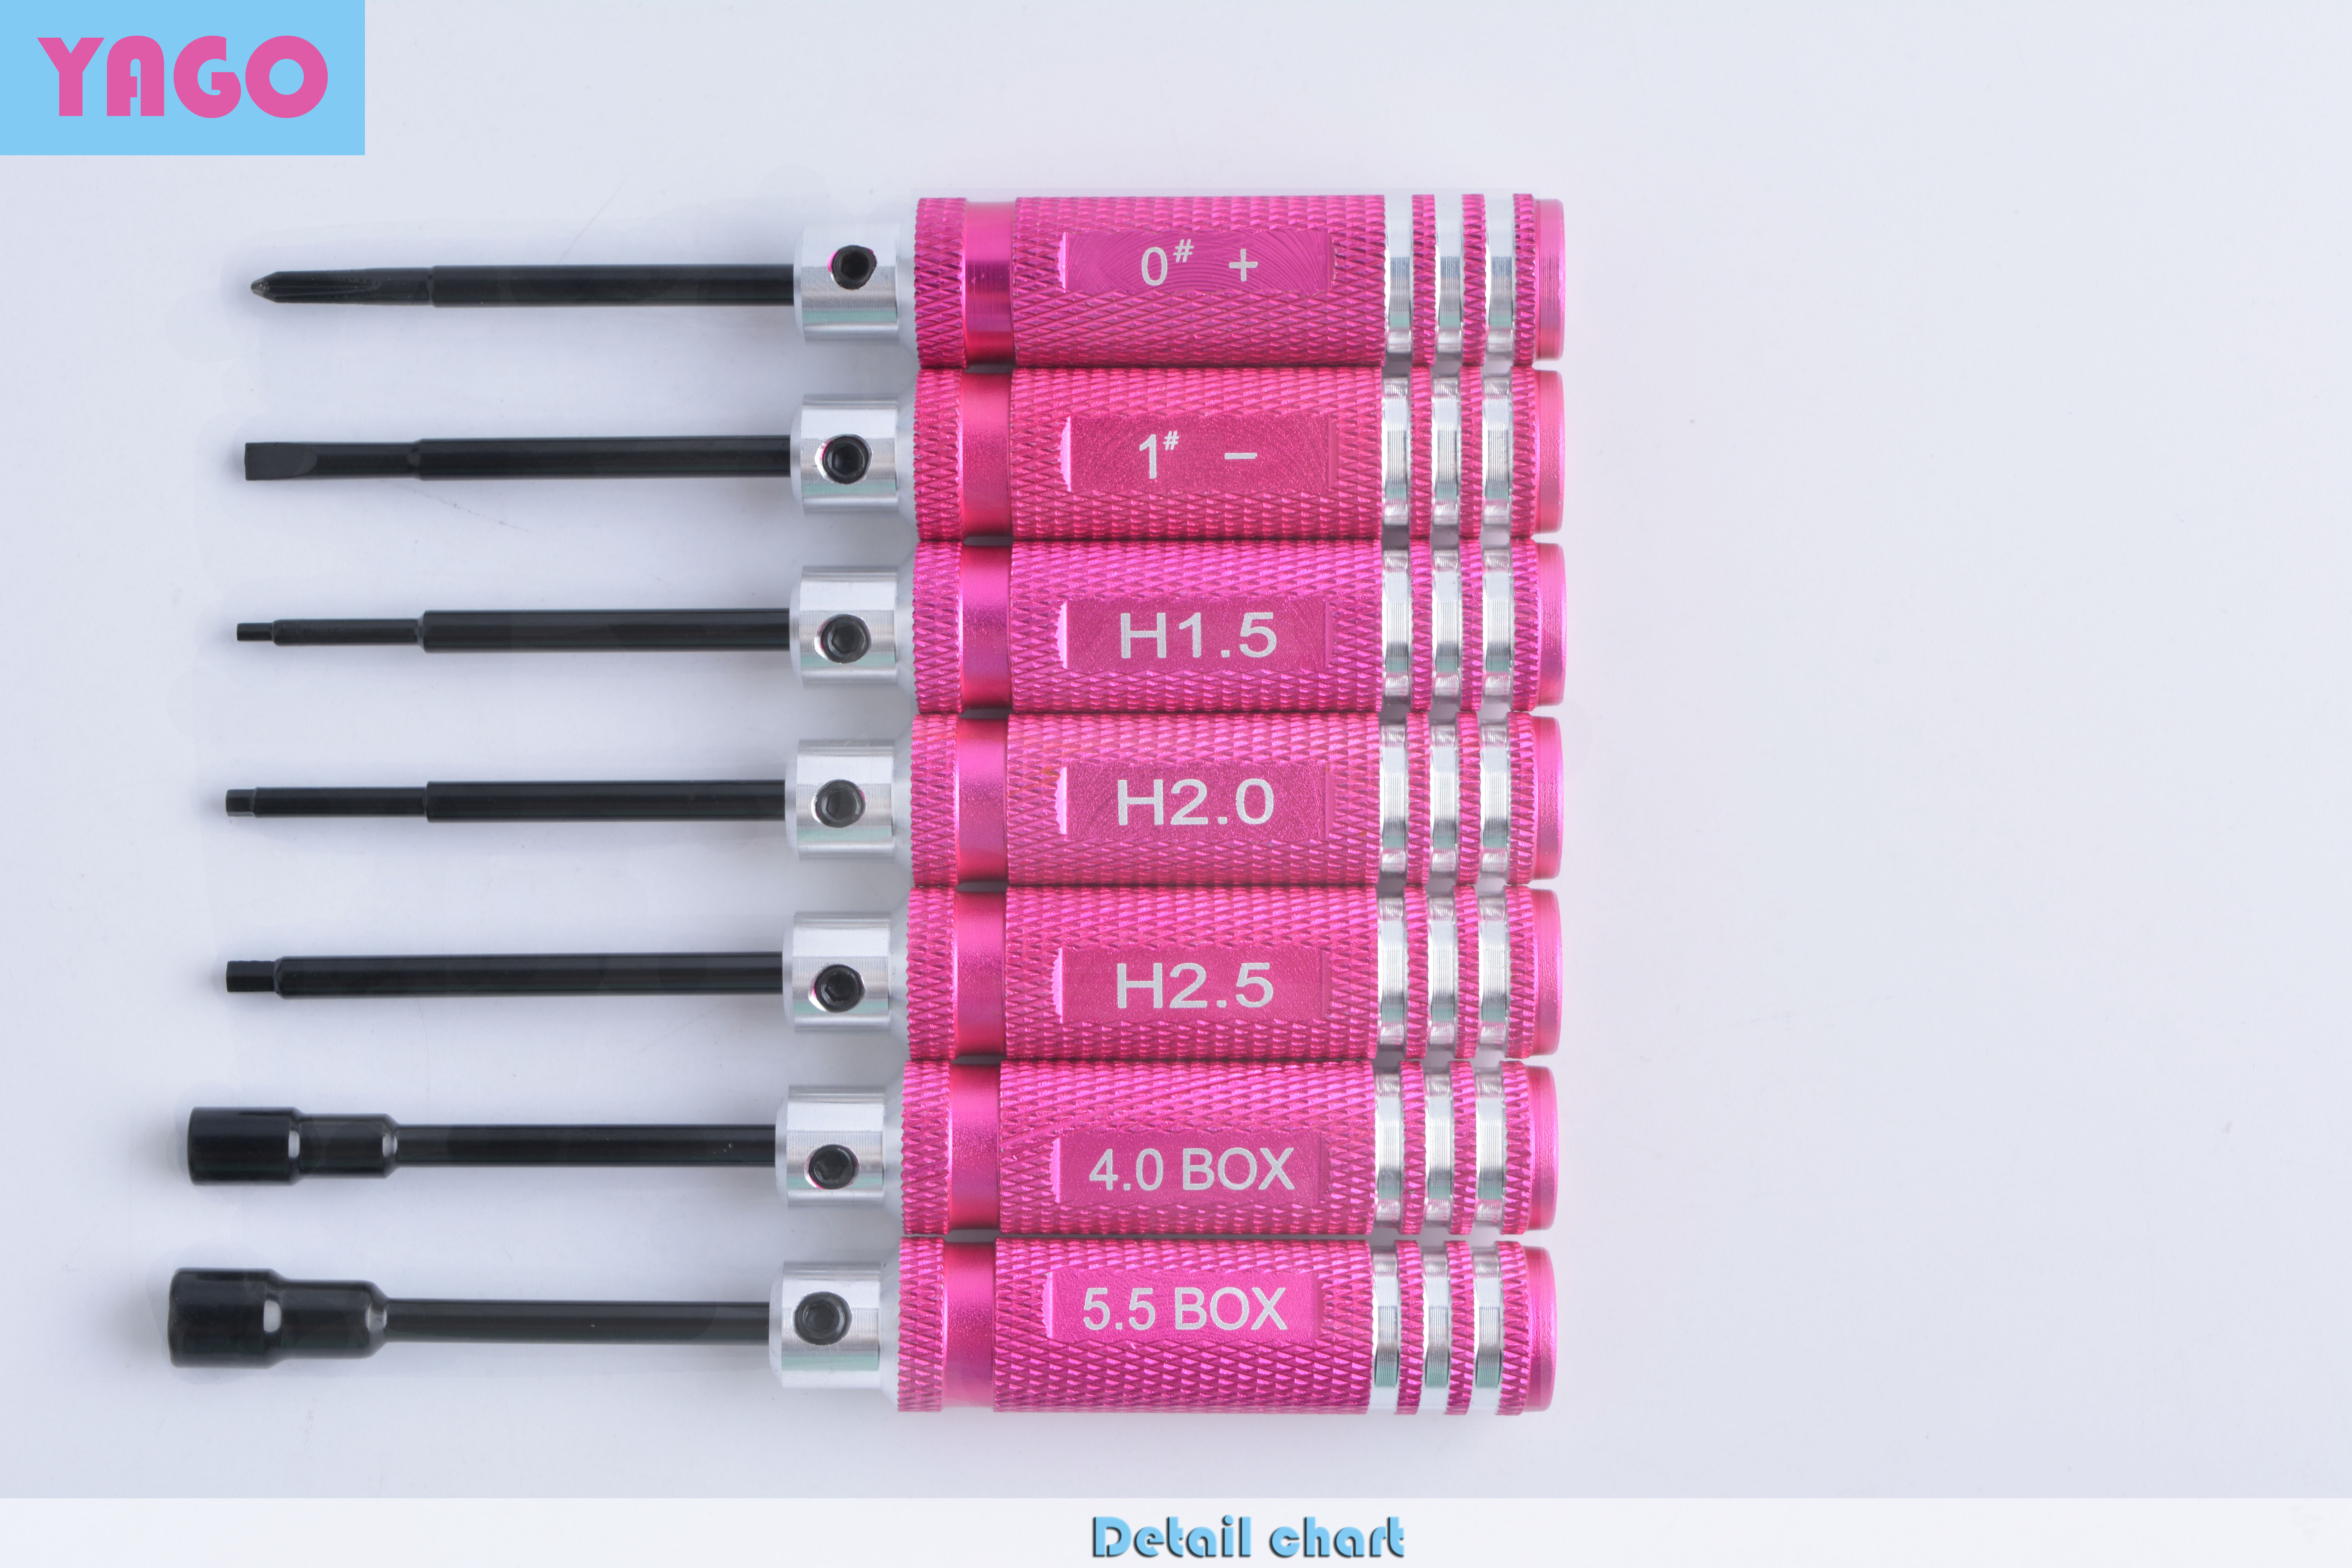 7pcs set RC Tools hex screw driver set titanium plating hardened 1 5 2 0 2 5 3 0mm screwdriver For RC helicopter tools in Tool Parts from Tools